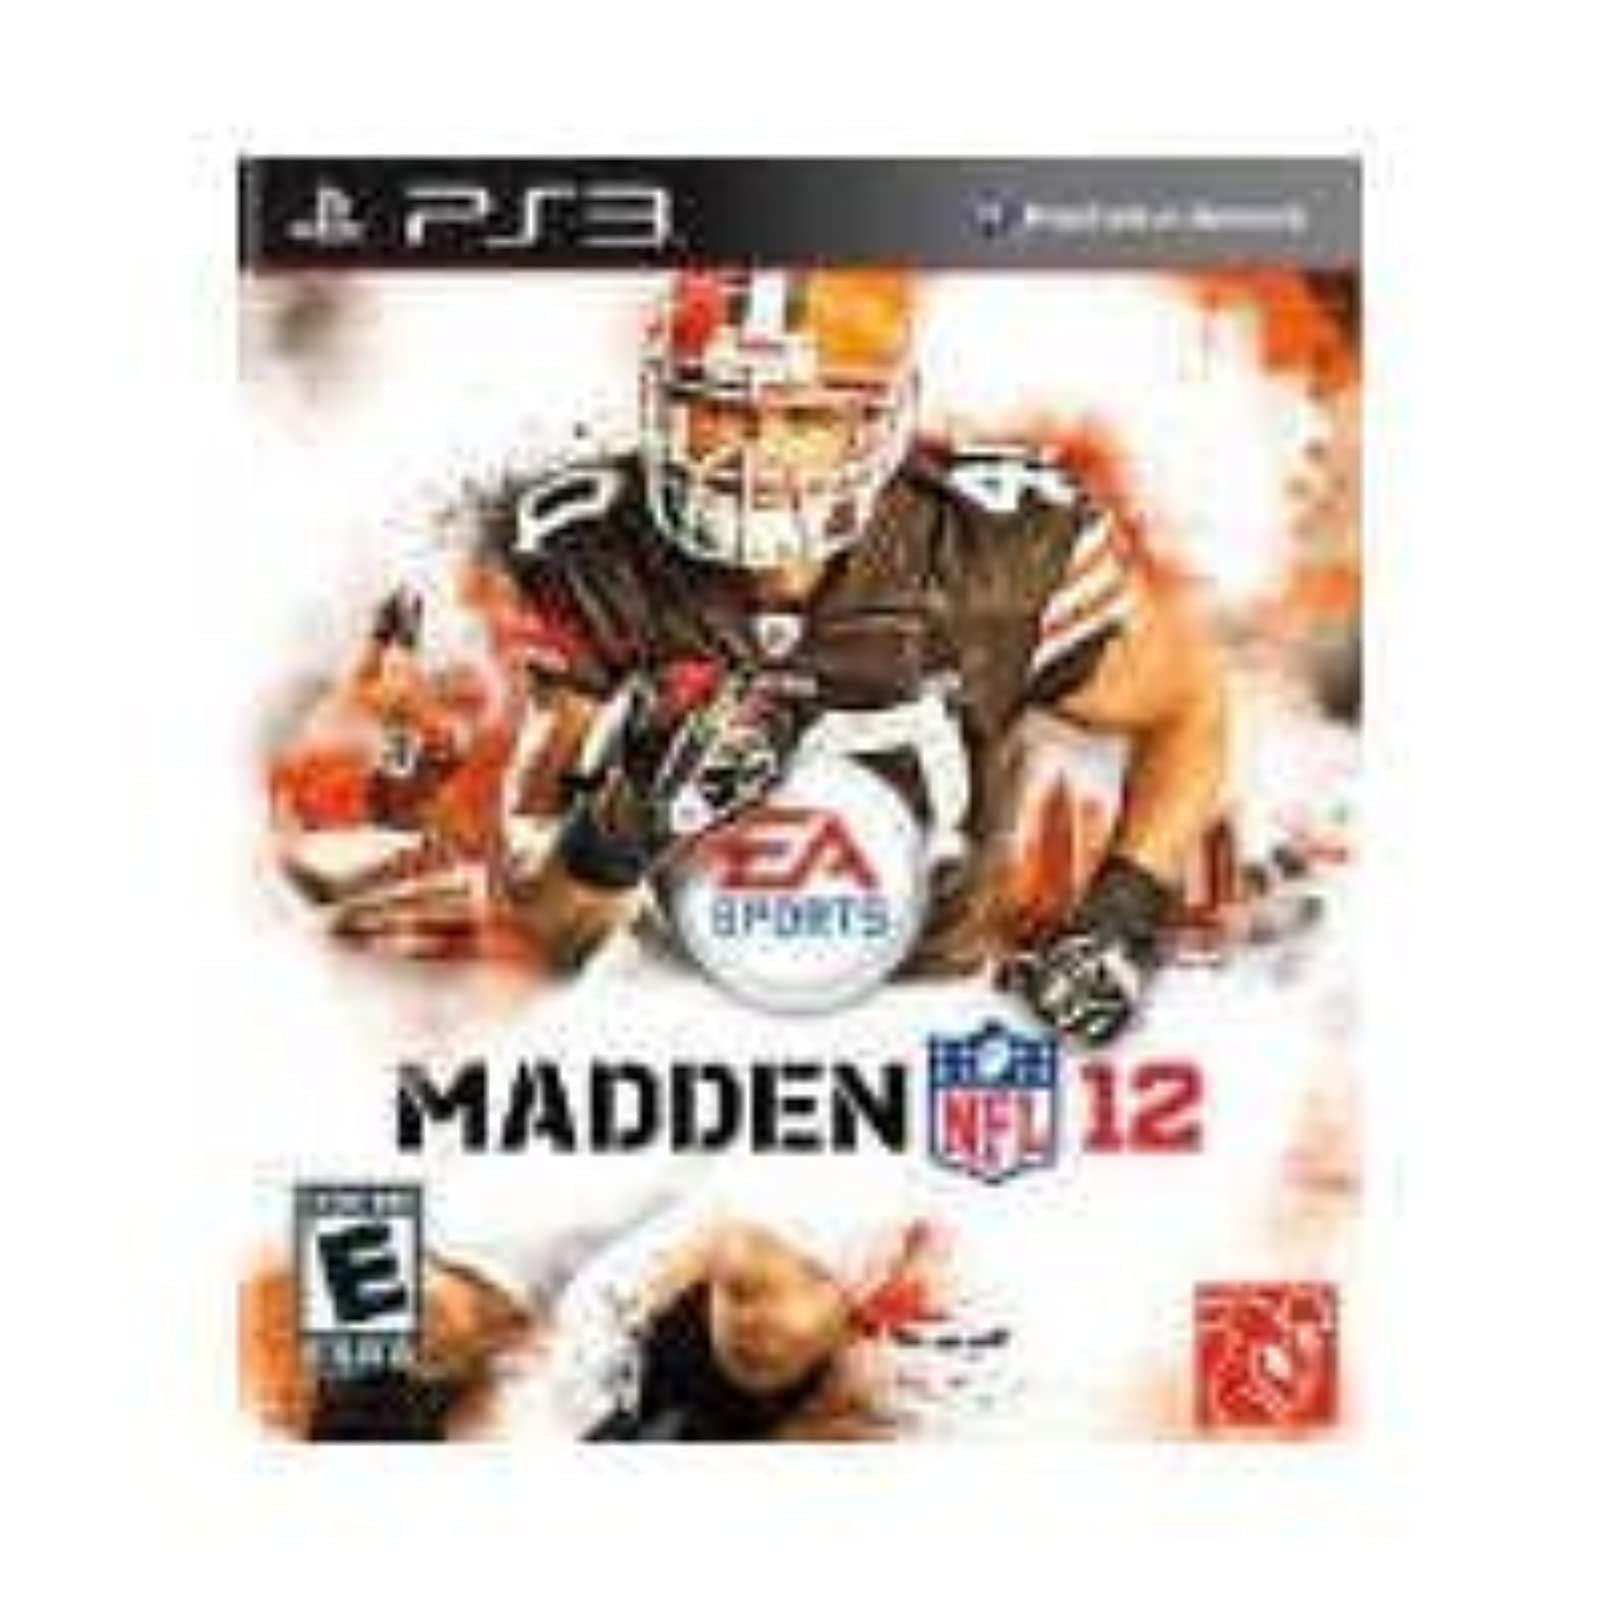 Madden NFL 12 For PlayStation 3 PS3 Football